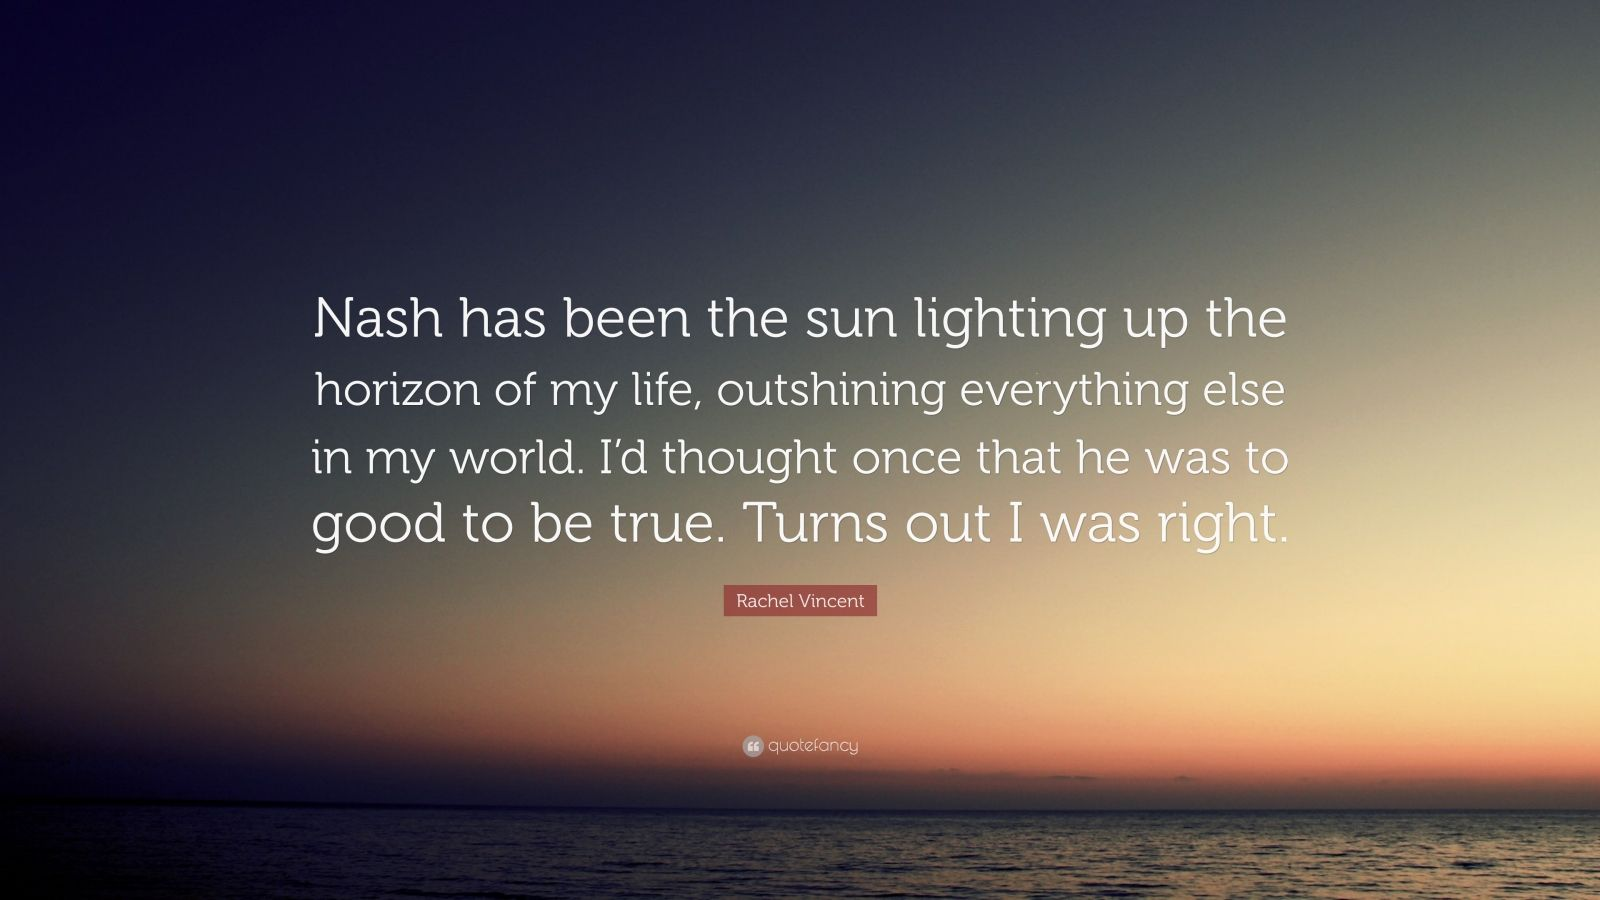 """Rachel Vincent Quote: """"Nash has been the sun lighting up the horizon of my life, outshining everything else in my world. I'd thought once that he was to good to be true. Turns out I was right."""""""